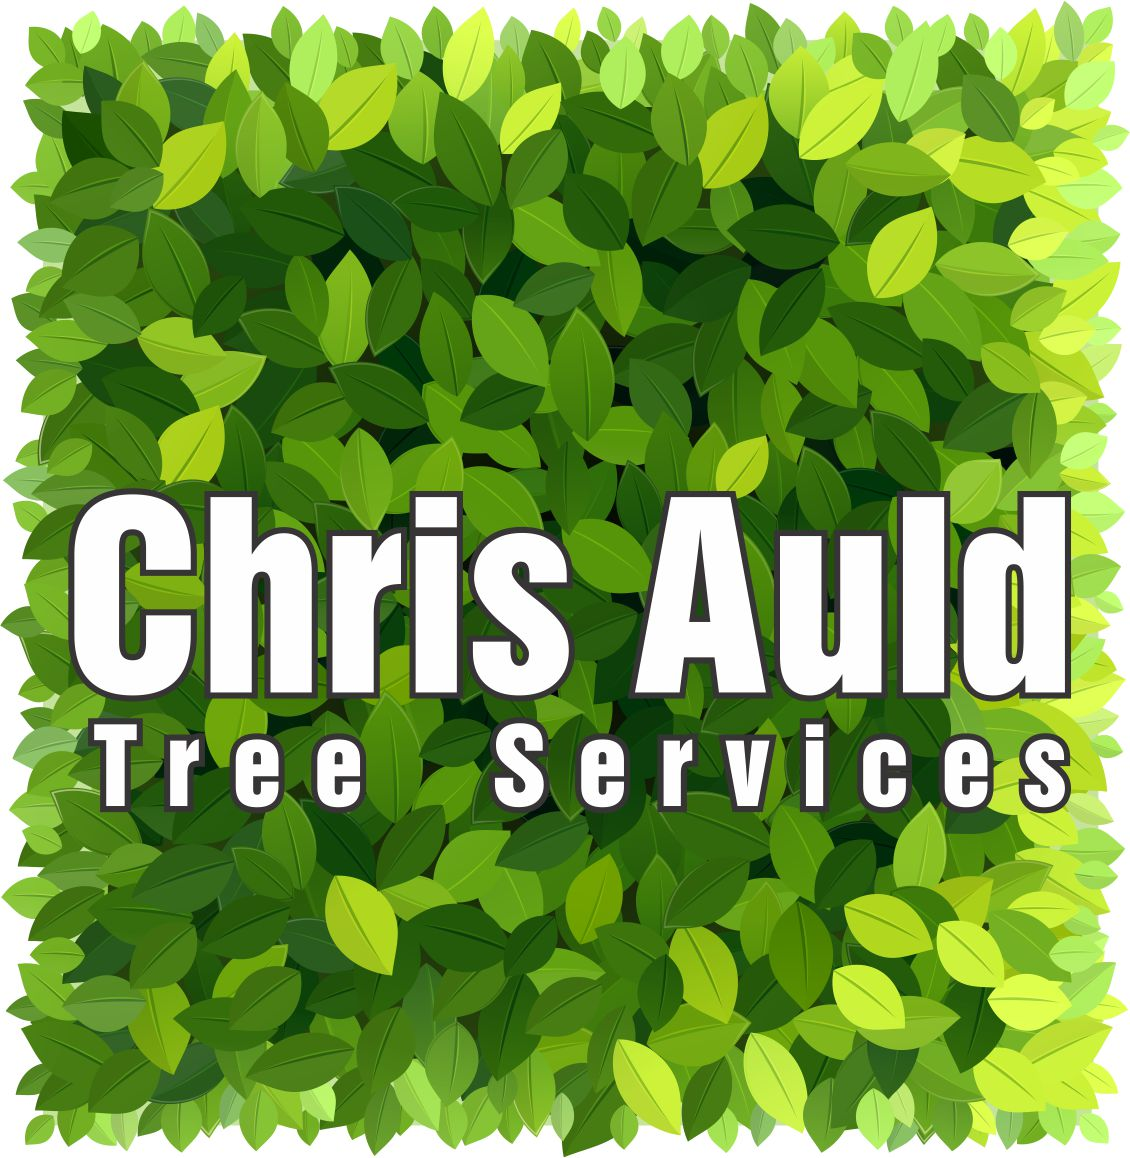 Chris Auld Tree Services